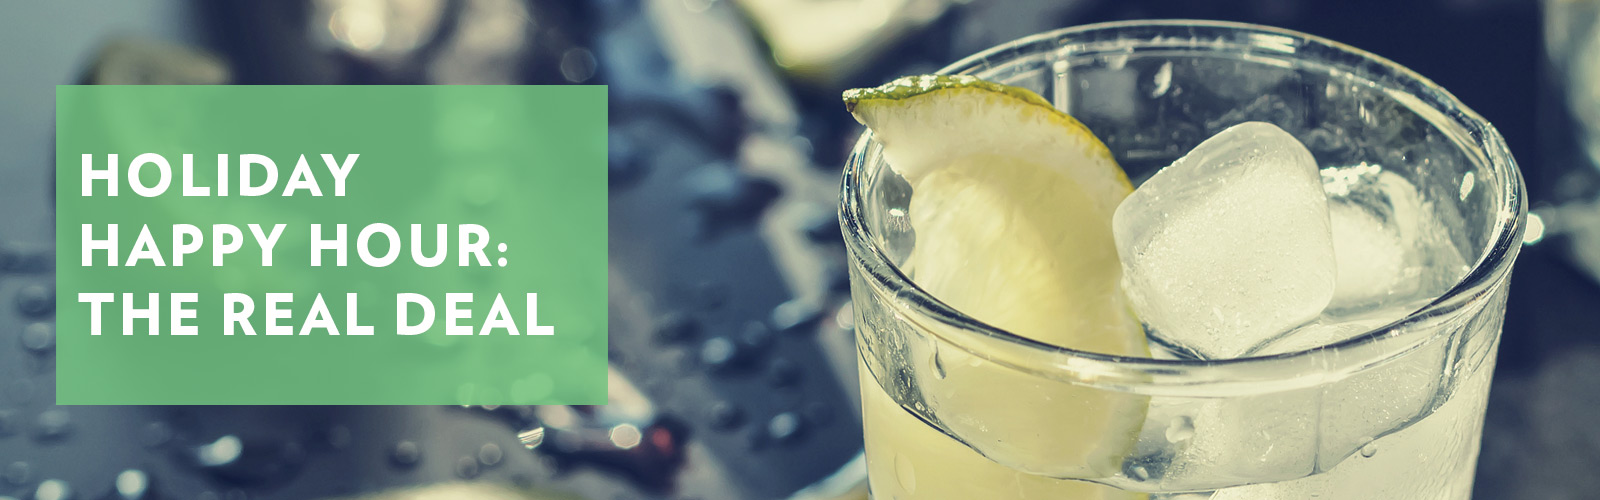 Holiday Happy Hour: The Real Deal